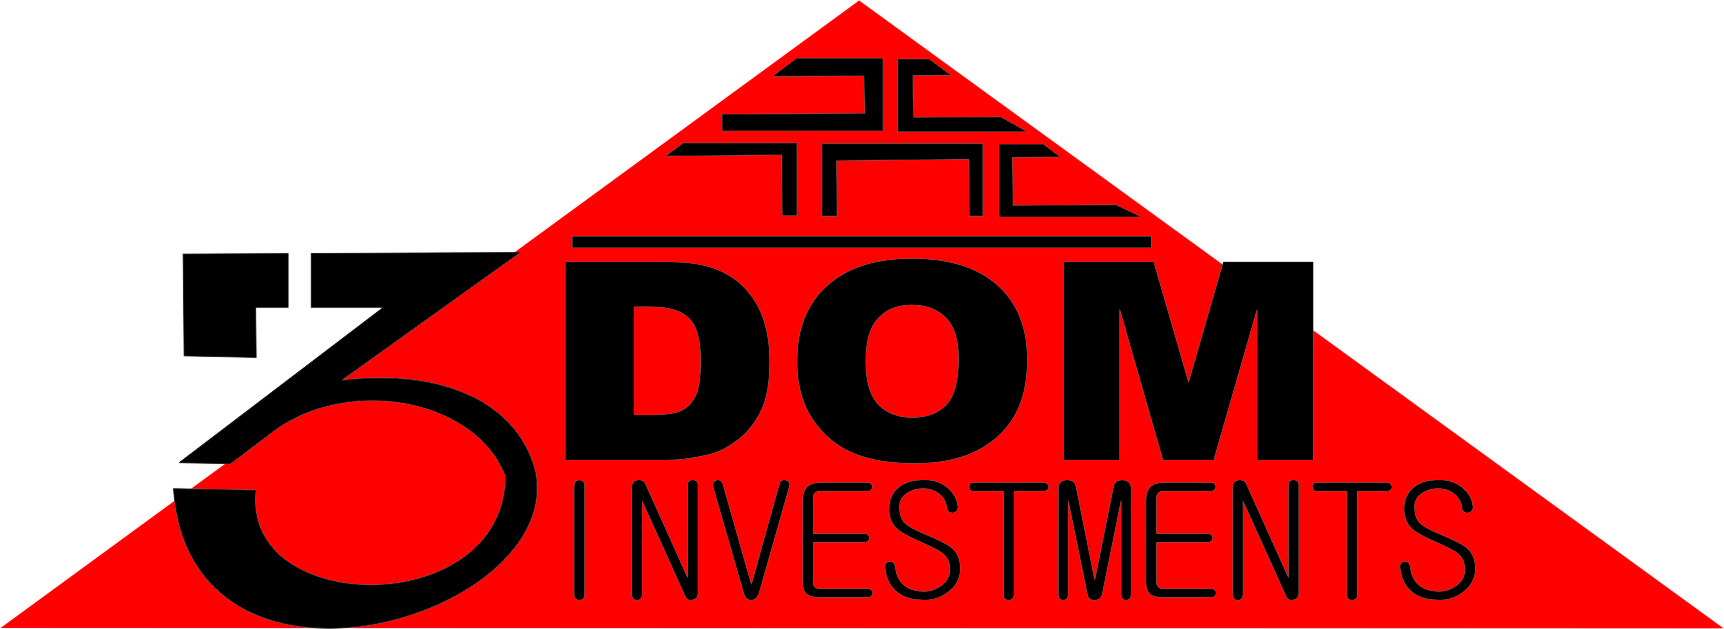 3DOM Investments